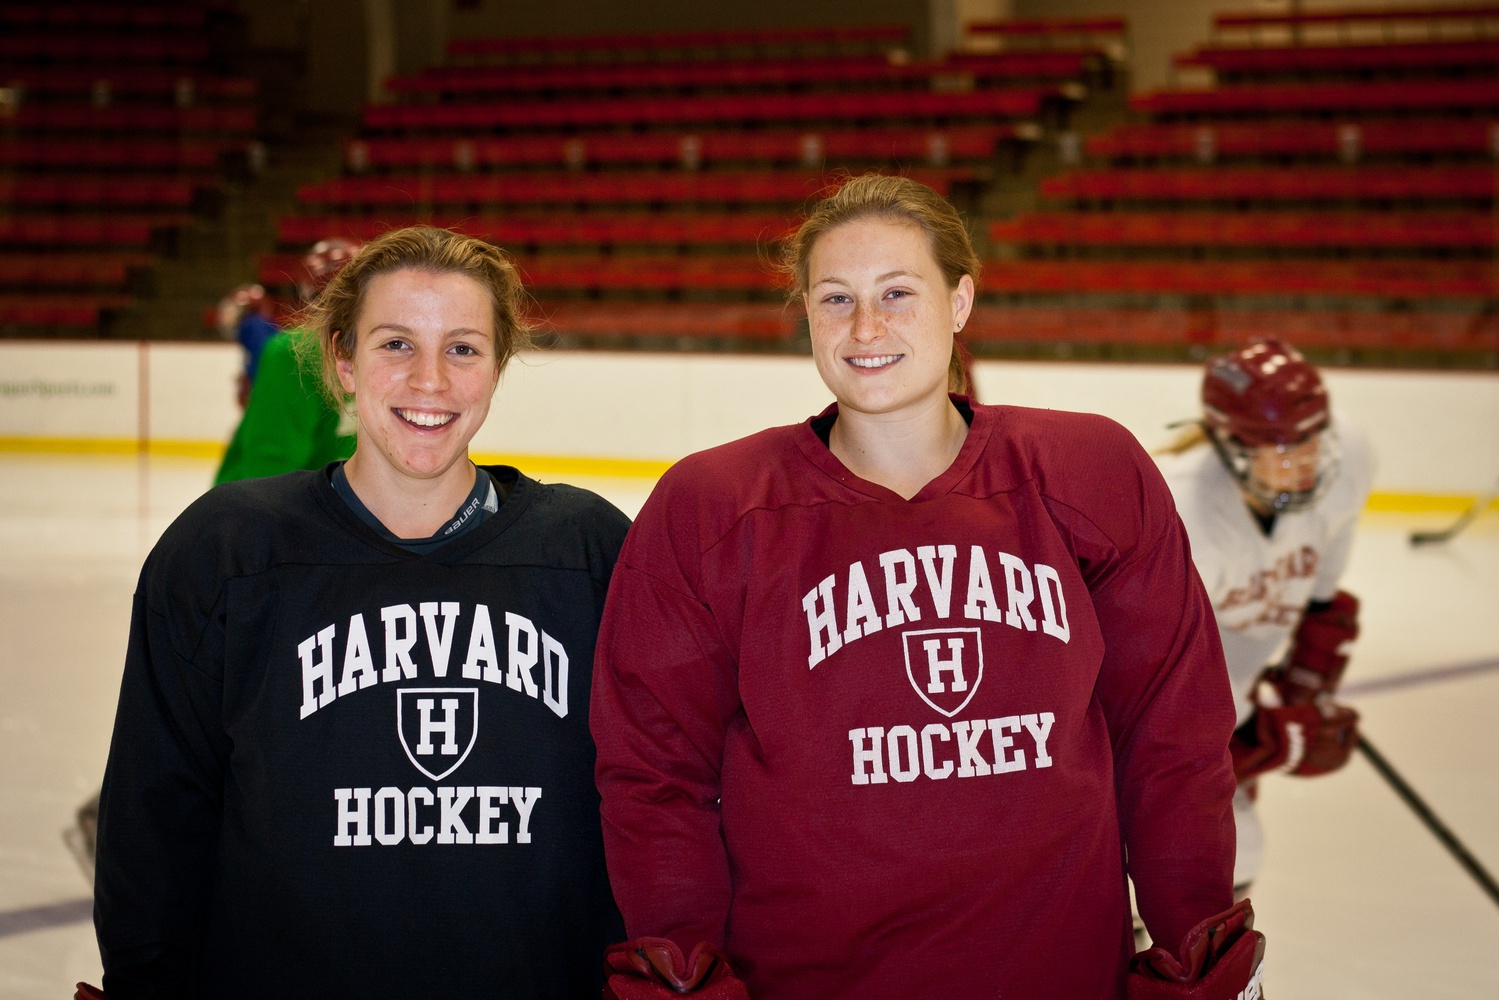 From left to right: Michelle L. Picard and Lyndsey B. Fry were named to the USA Women's Olympic Hockey team on Wednesday.